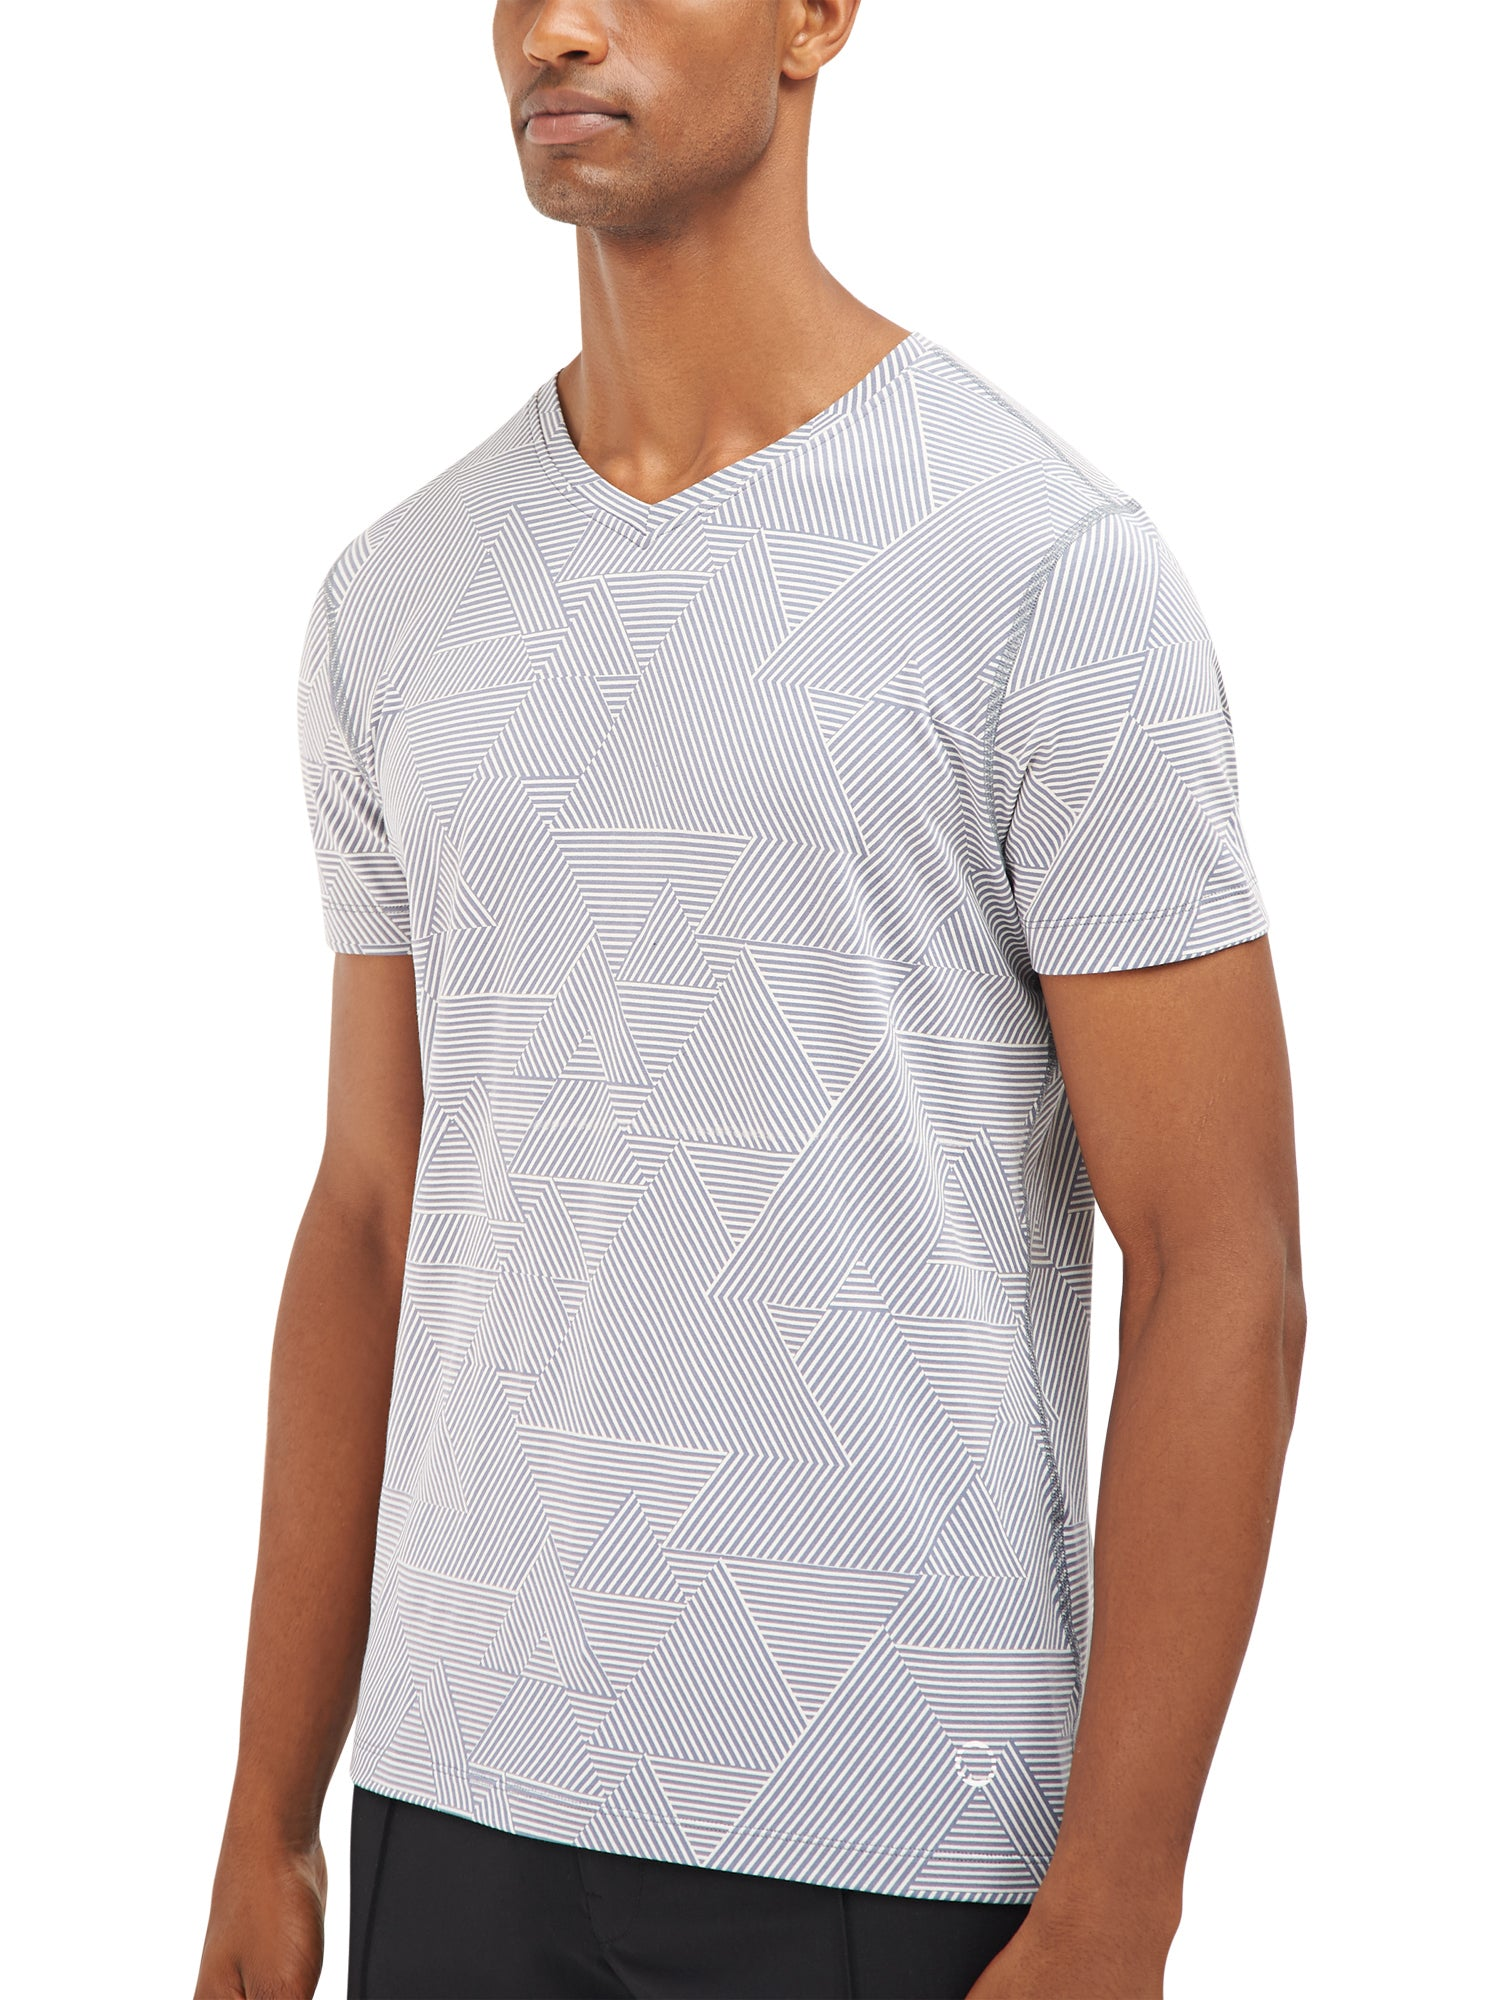 Subdued S/S V-Neck T-Shirt